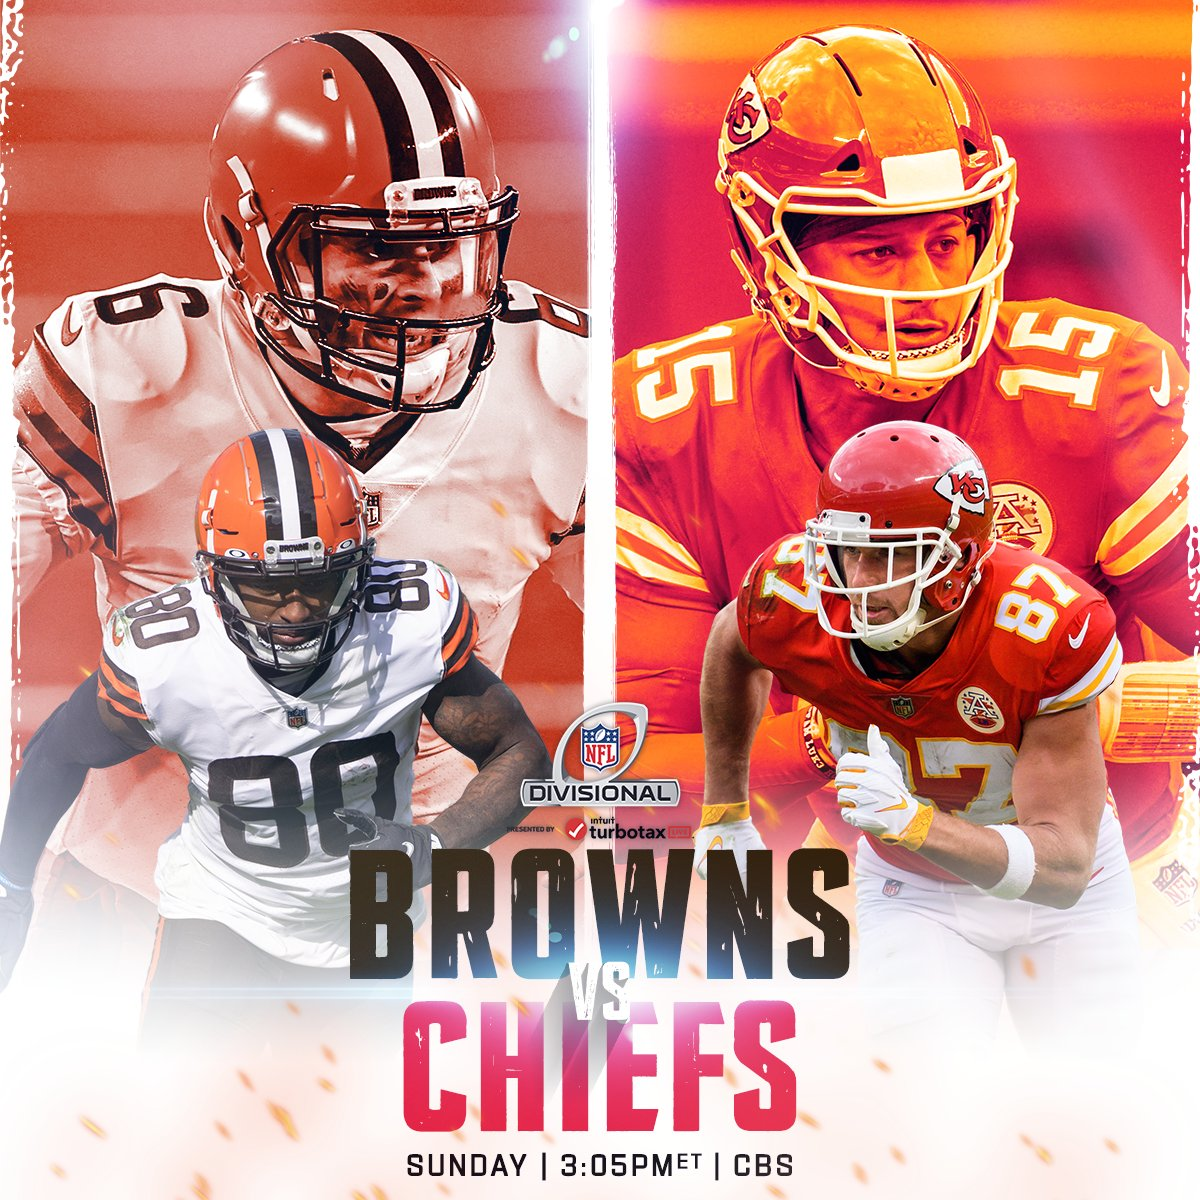 Baker & Jarvis or Mahomes & Kelce? #NFLPlayoffs   #WeWantMore | #RunItBack   📺: #CLEvsKC | Sunday 3:05pm ET on CBS 📱: NFL app // Yahoo Sports app